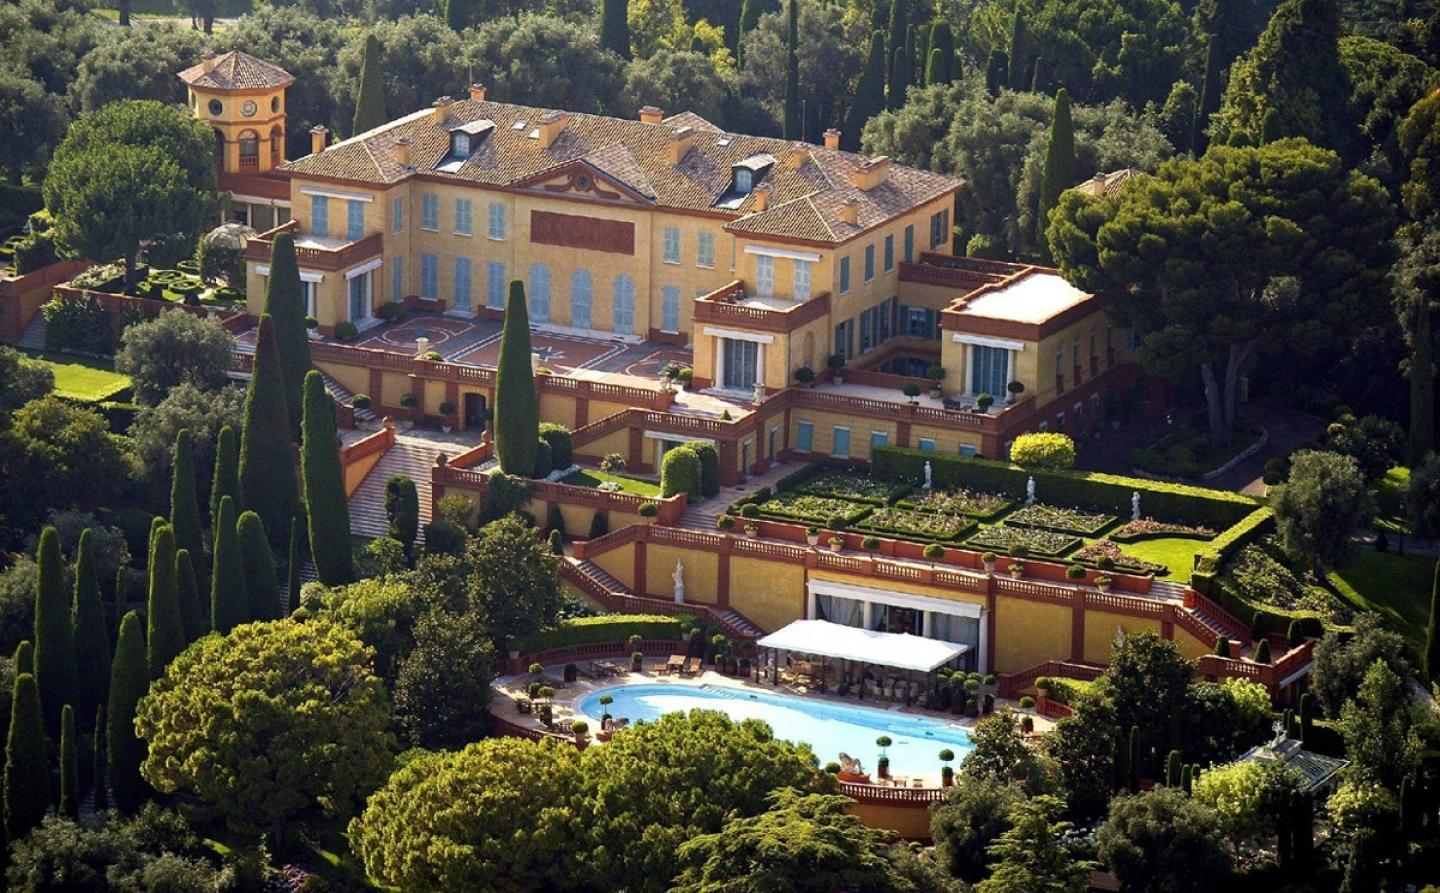 Top 9 Most Expensive Houses in the World (2019